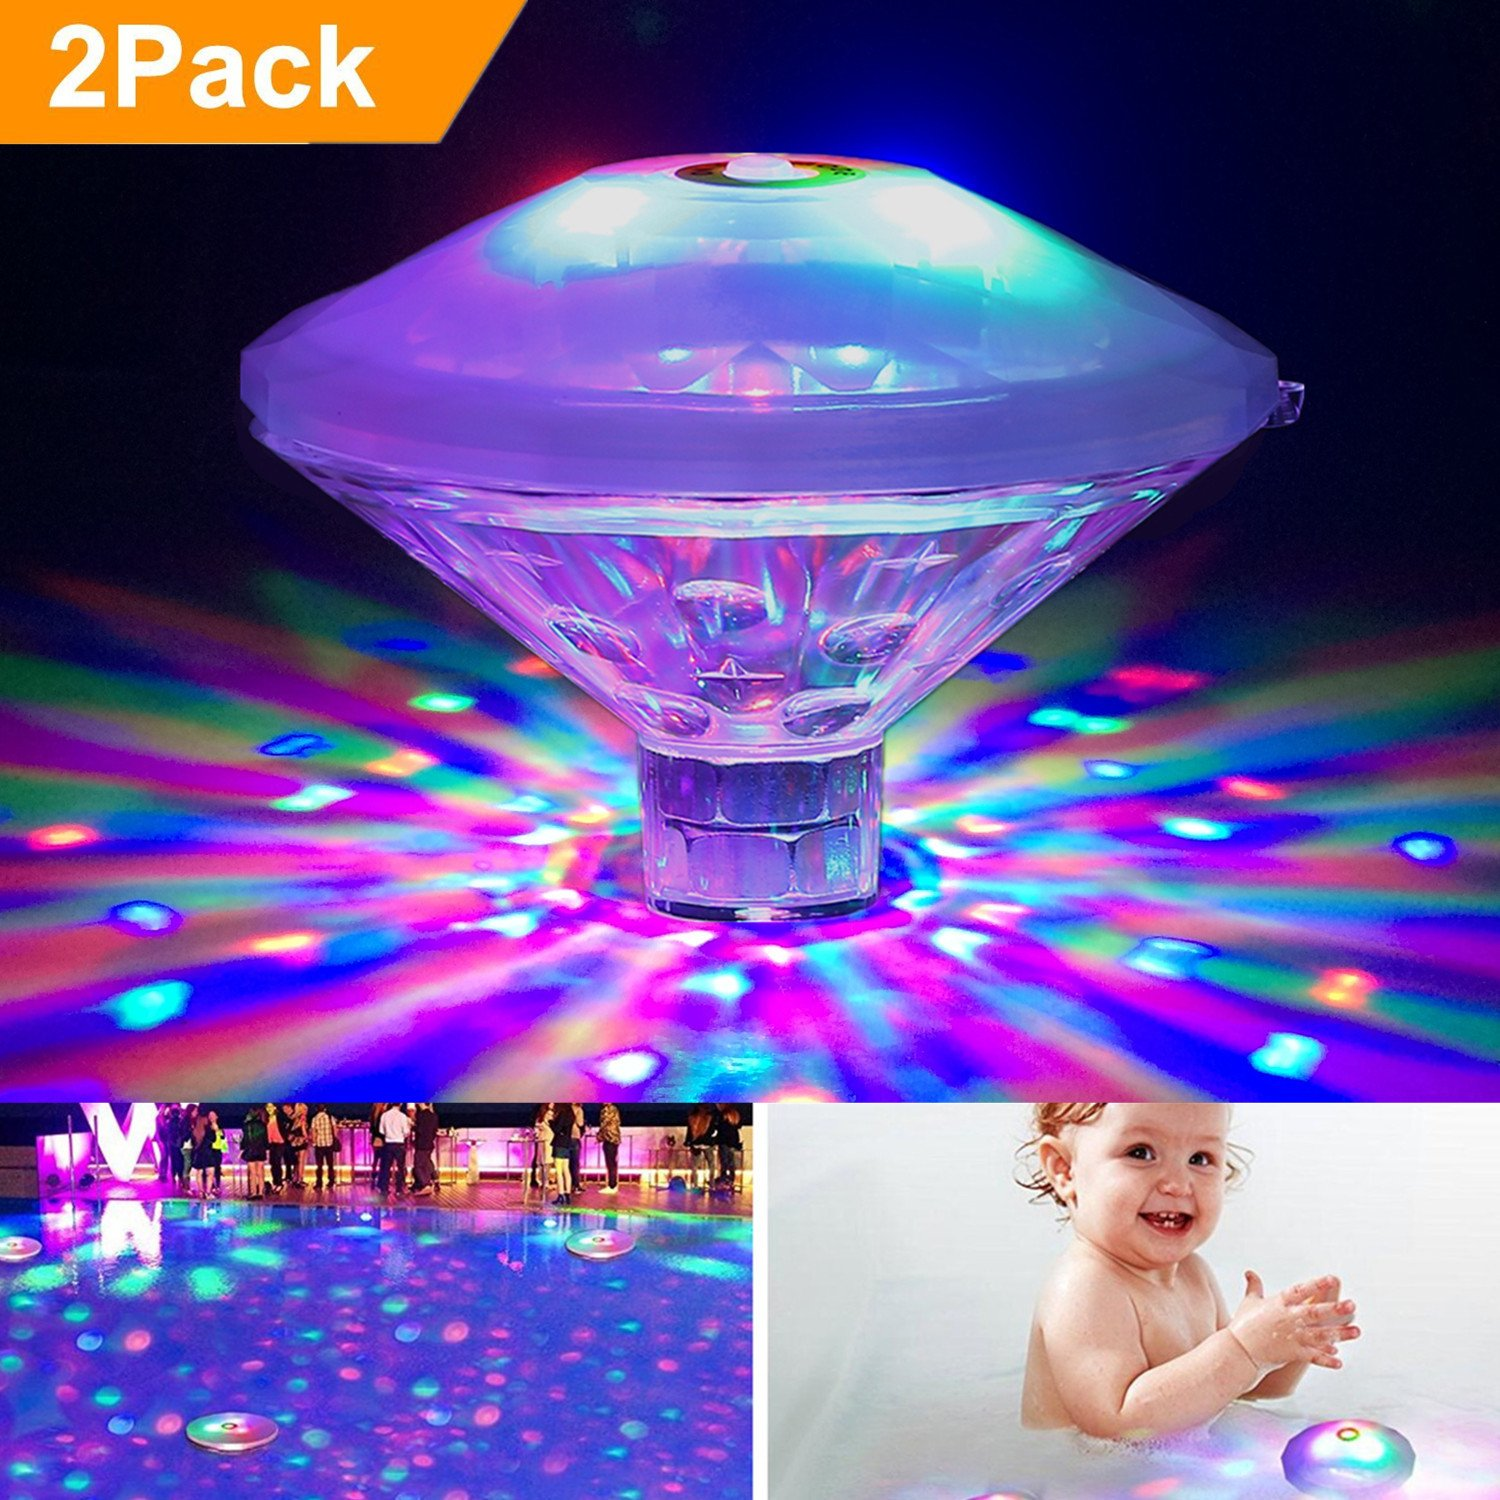 FTSTC Waterproof Swimming Baby Pool Lights - RGB, 7 Modes, Battery Operated Floating Pool Light Bulb for Pool, Pond, Hot Tub Or Party Decorations (2PACK)